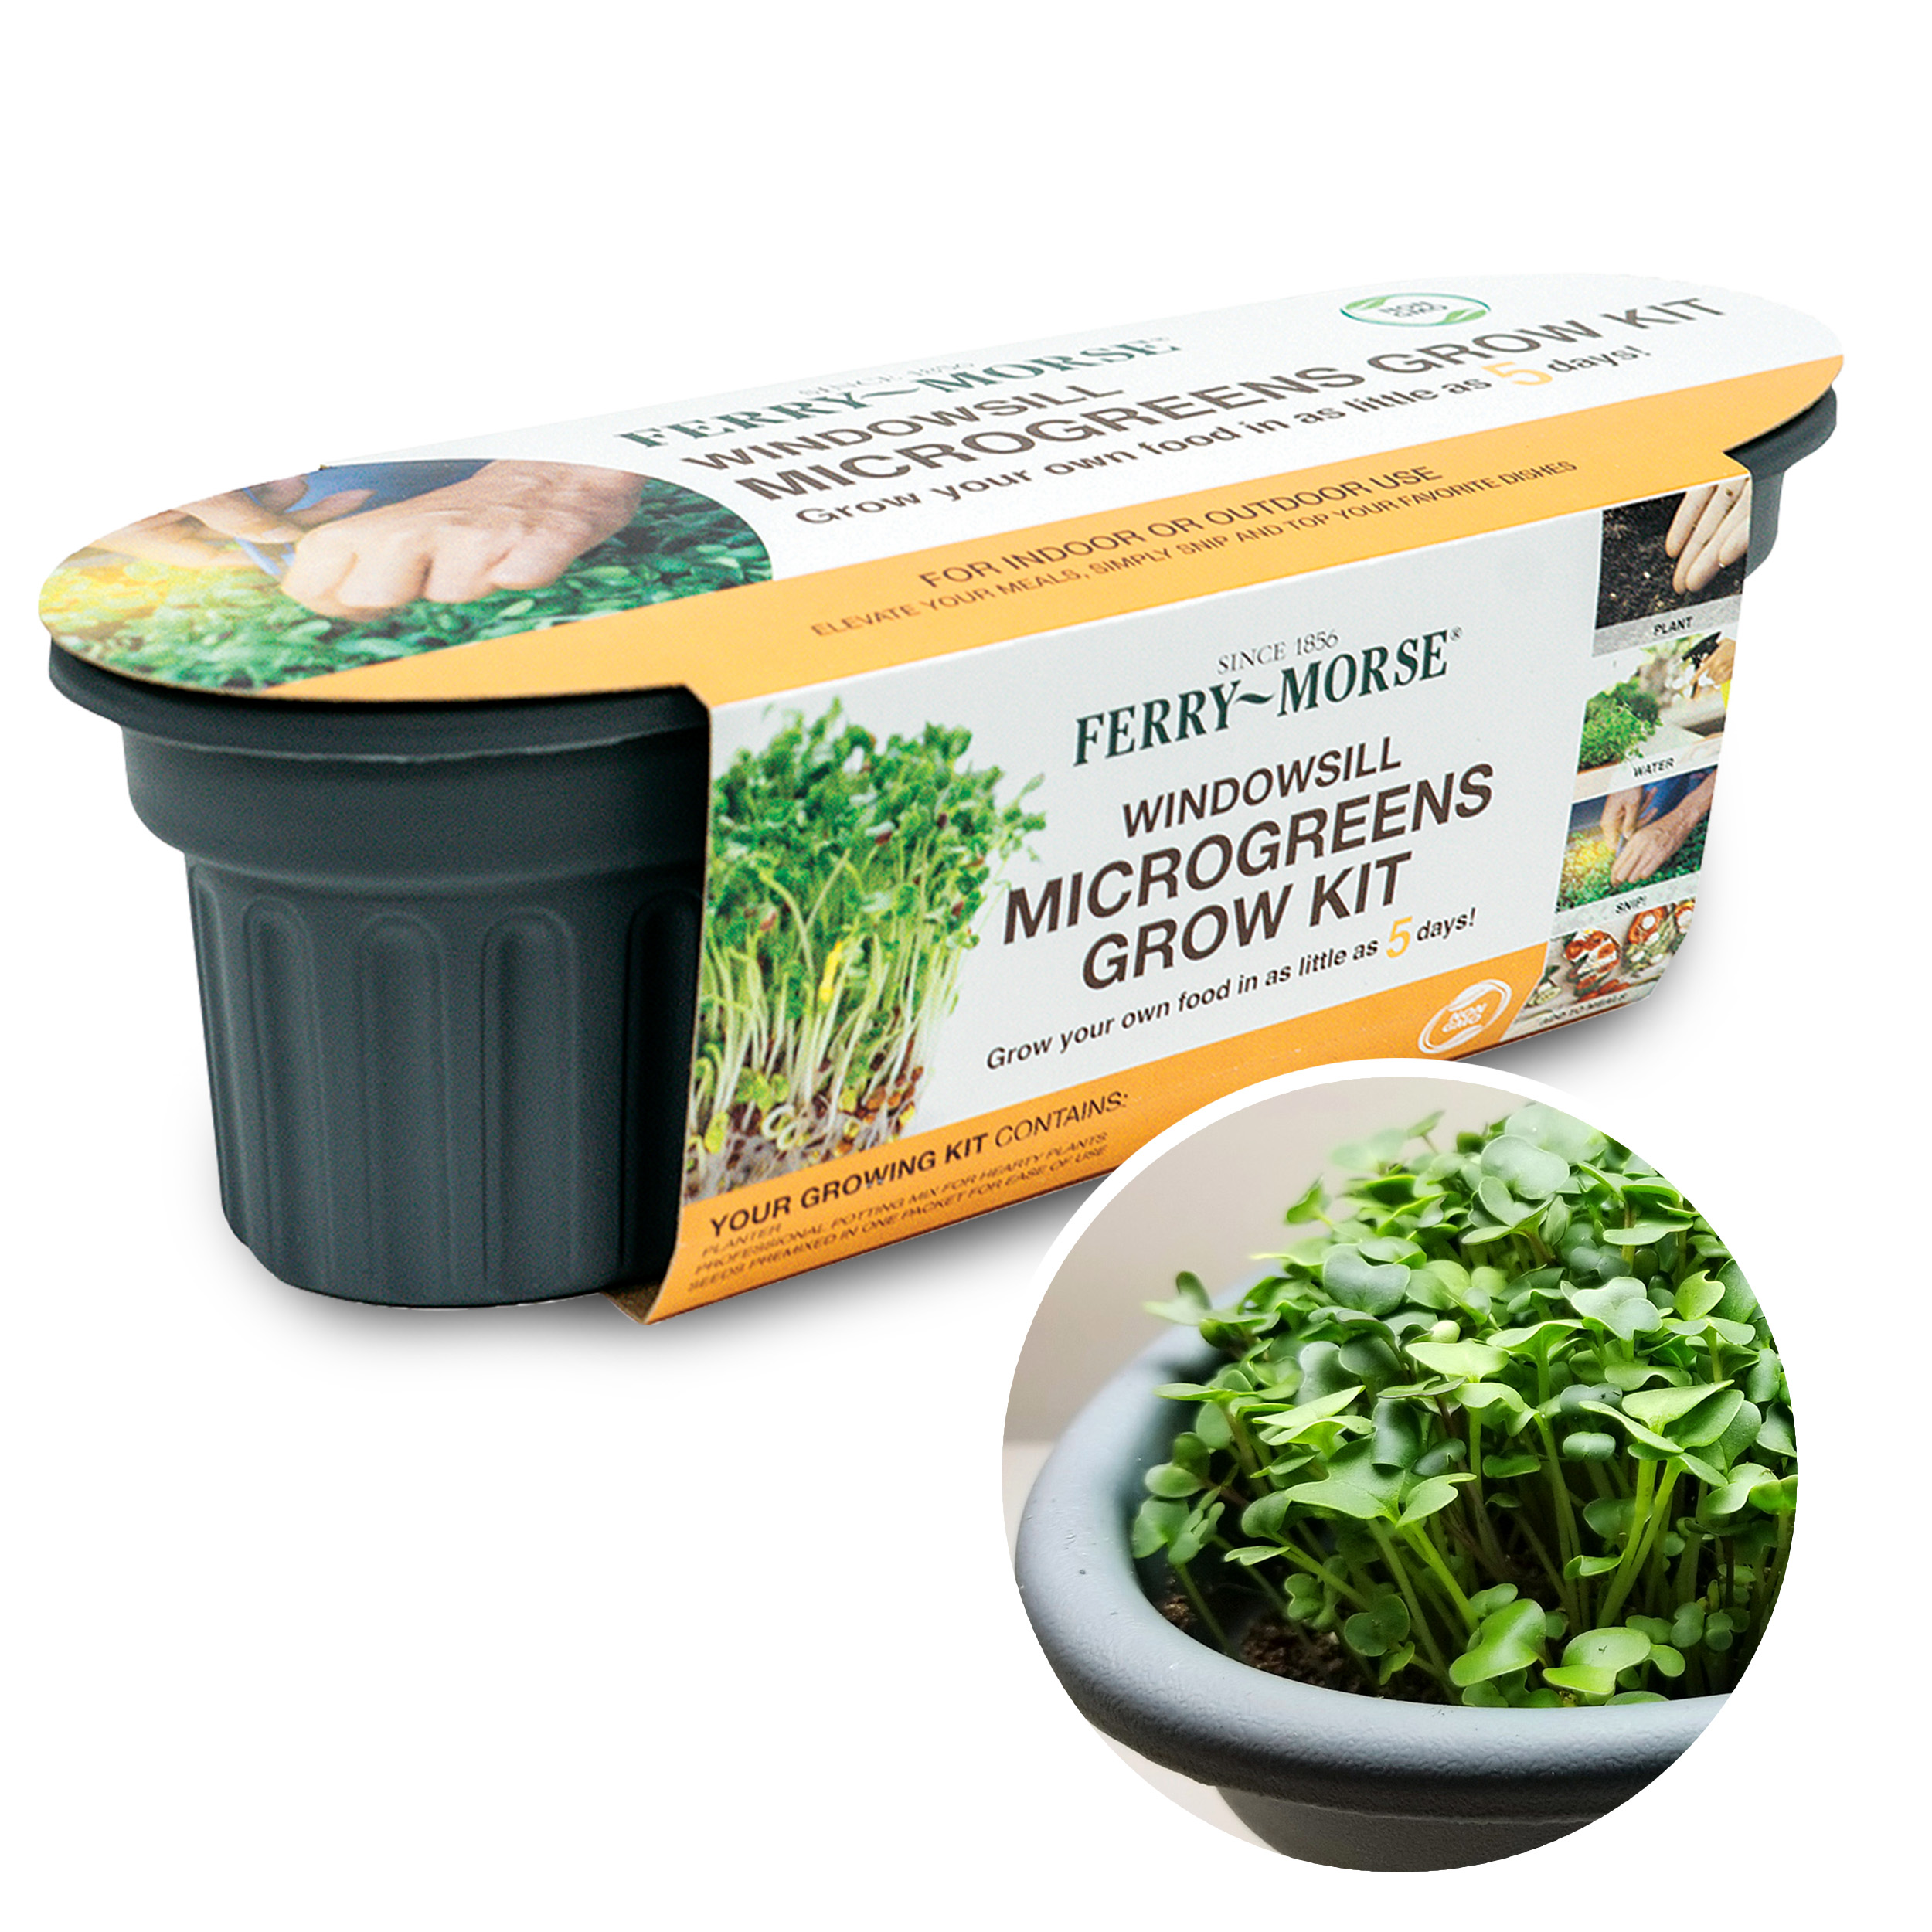 Ferry-Morse Microgreens Windowsill Grow Kit pictured in its retail packaging